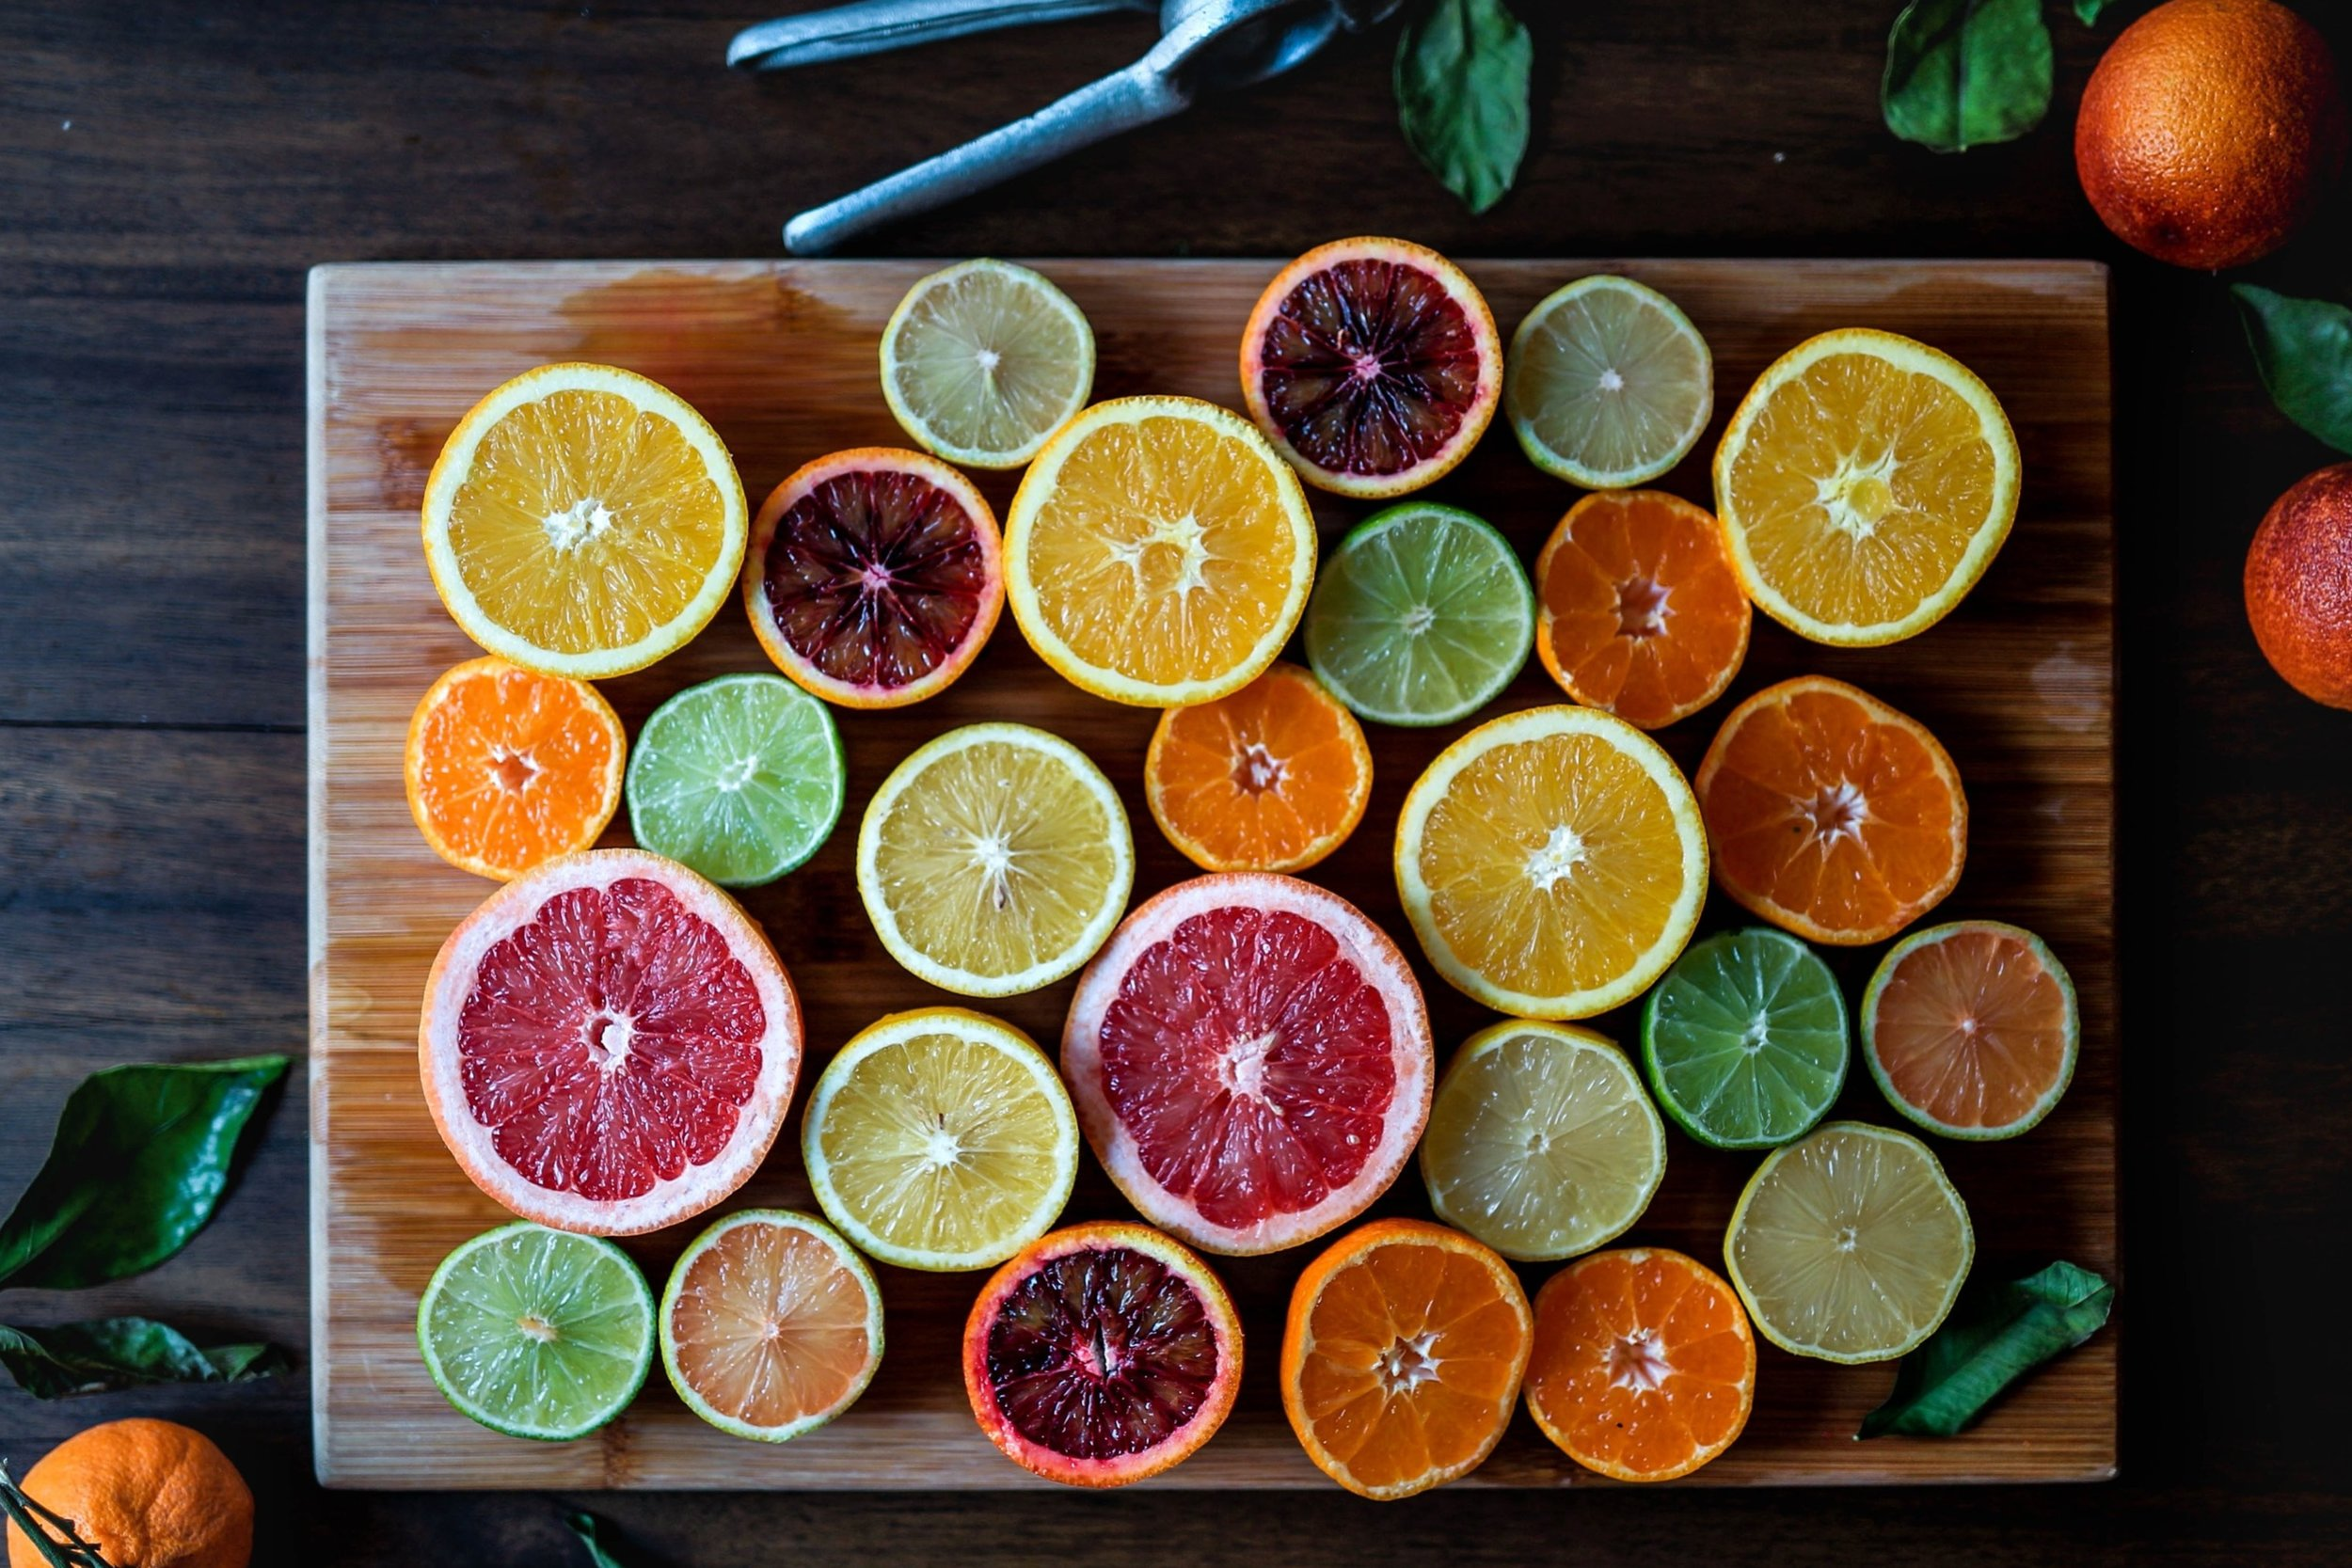 Fresh juices are pretty and delicious, but 'detoxing' with them is not essential to optimal health.